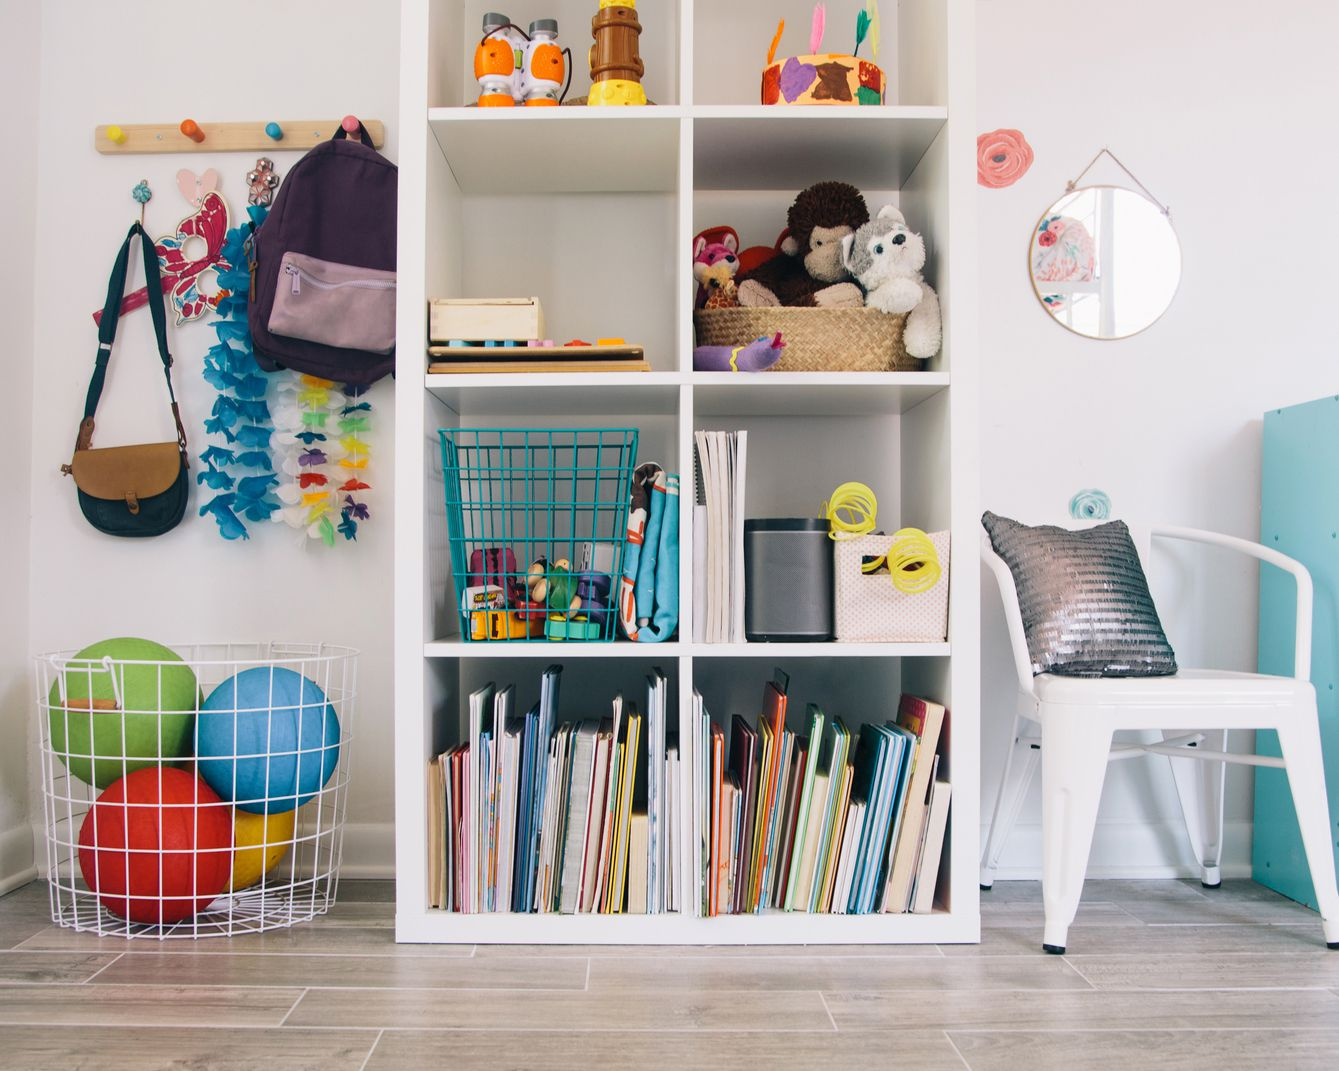 studio childrens room decor crayola crayons no 8 by.htm 21 tips to help you organize your kiddo s toys  tips to help you organize your kiddo s toys